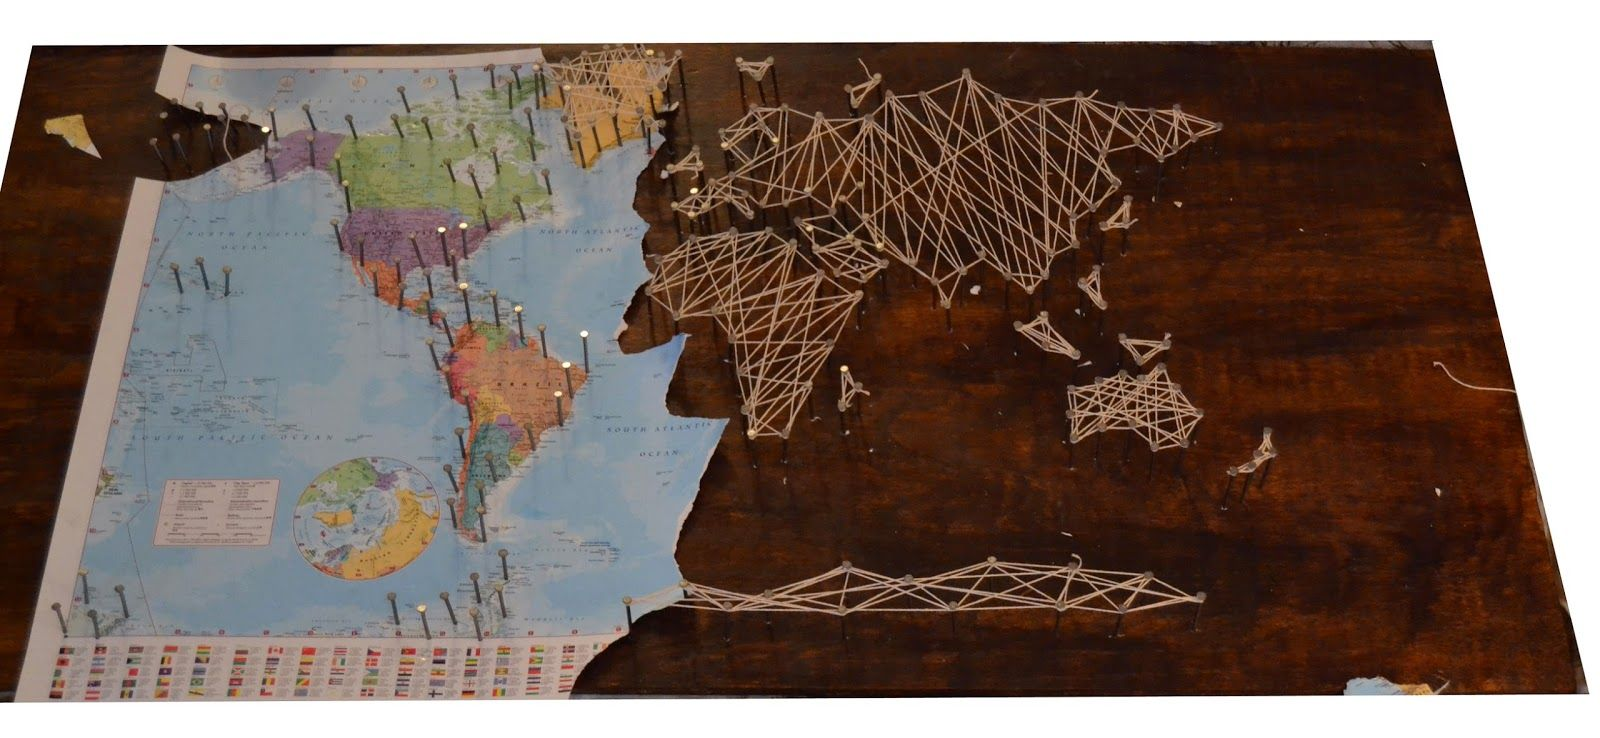 DIY: String Art World Map | Ideas for the House | Pinterest | Diy ...